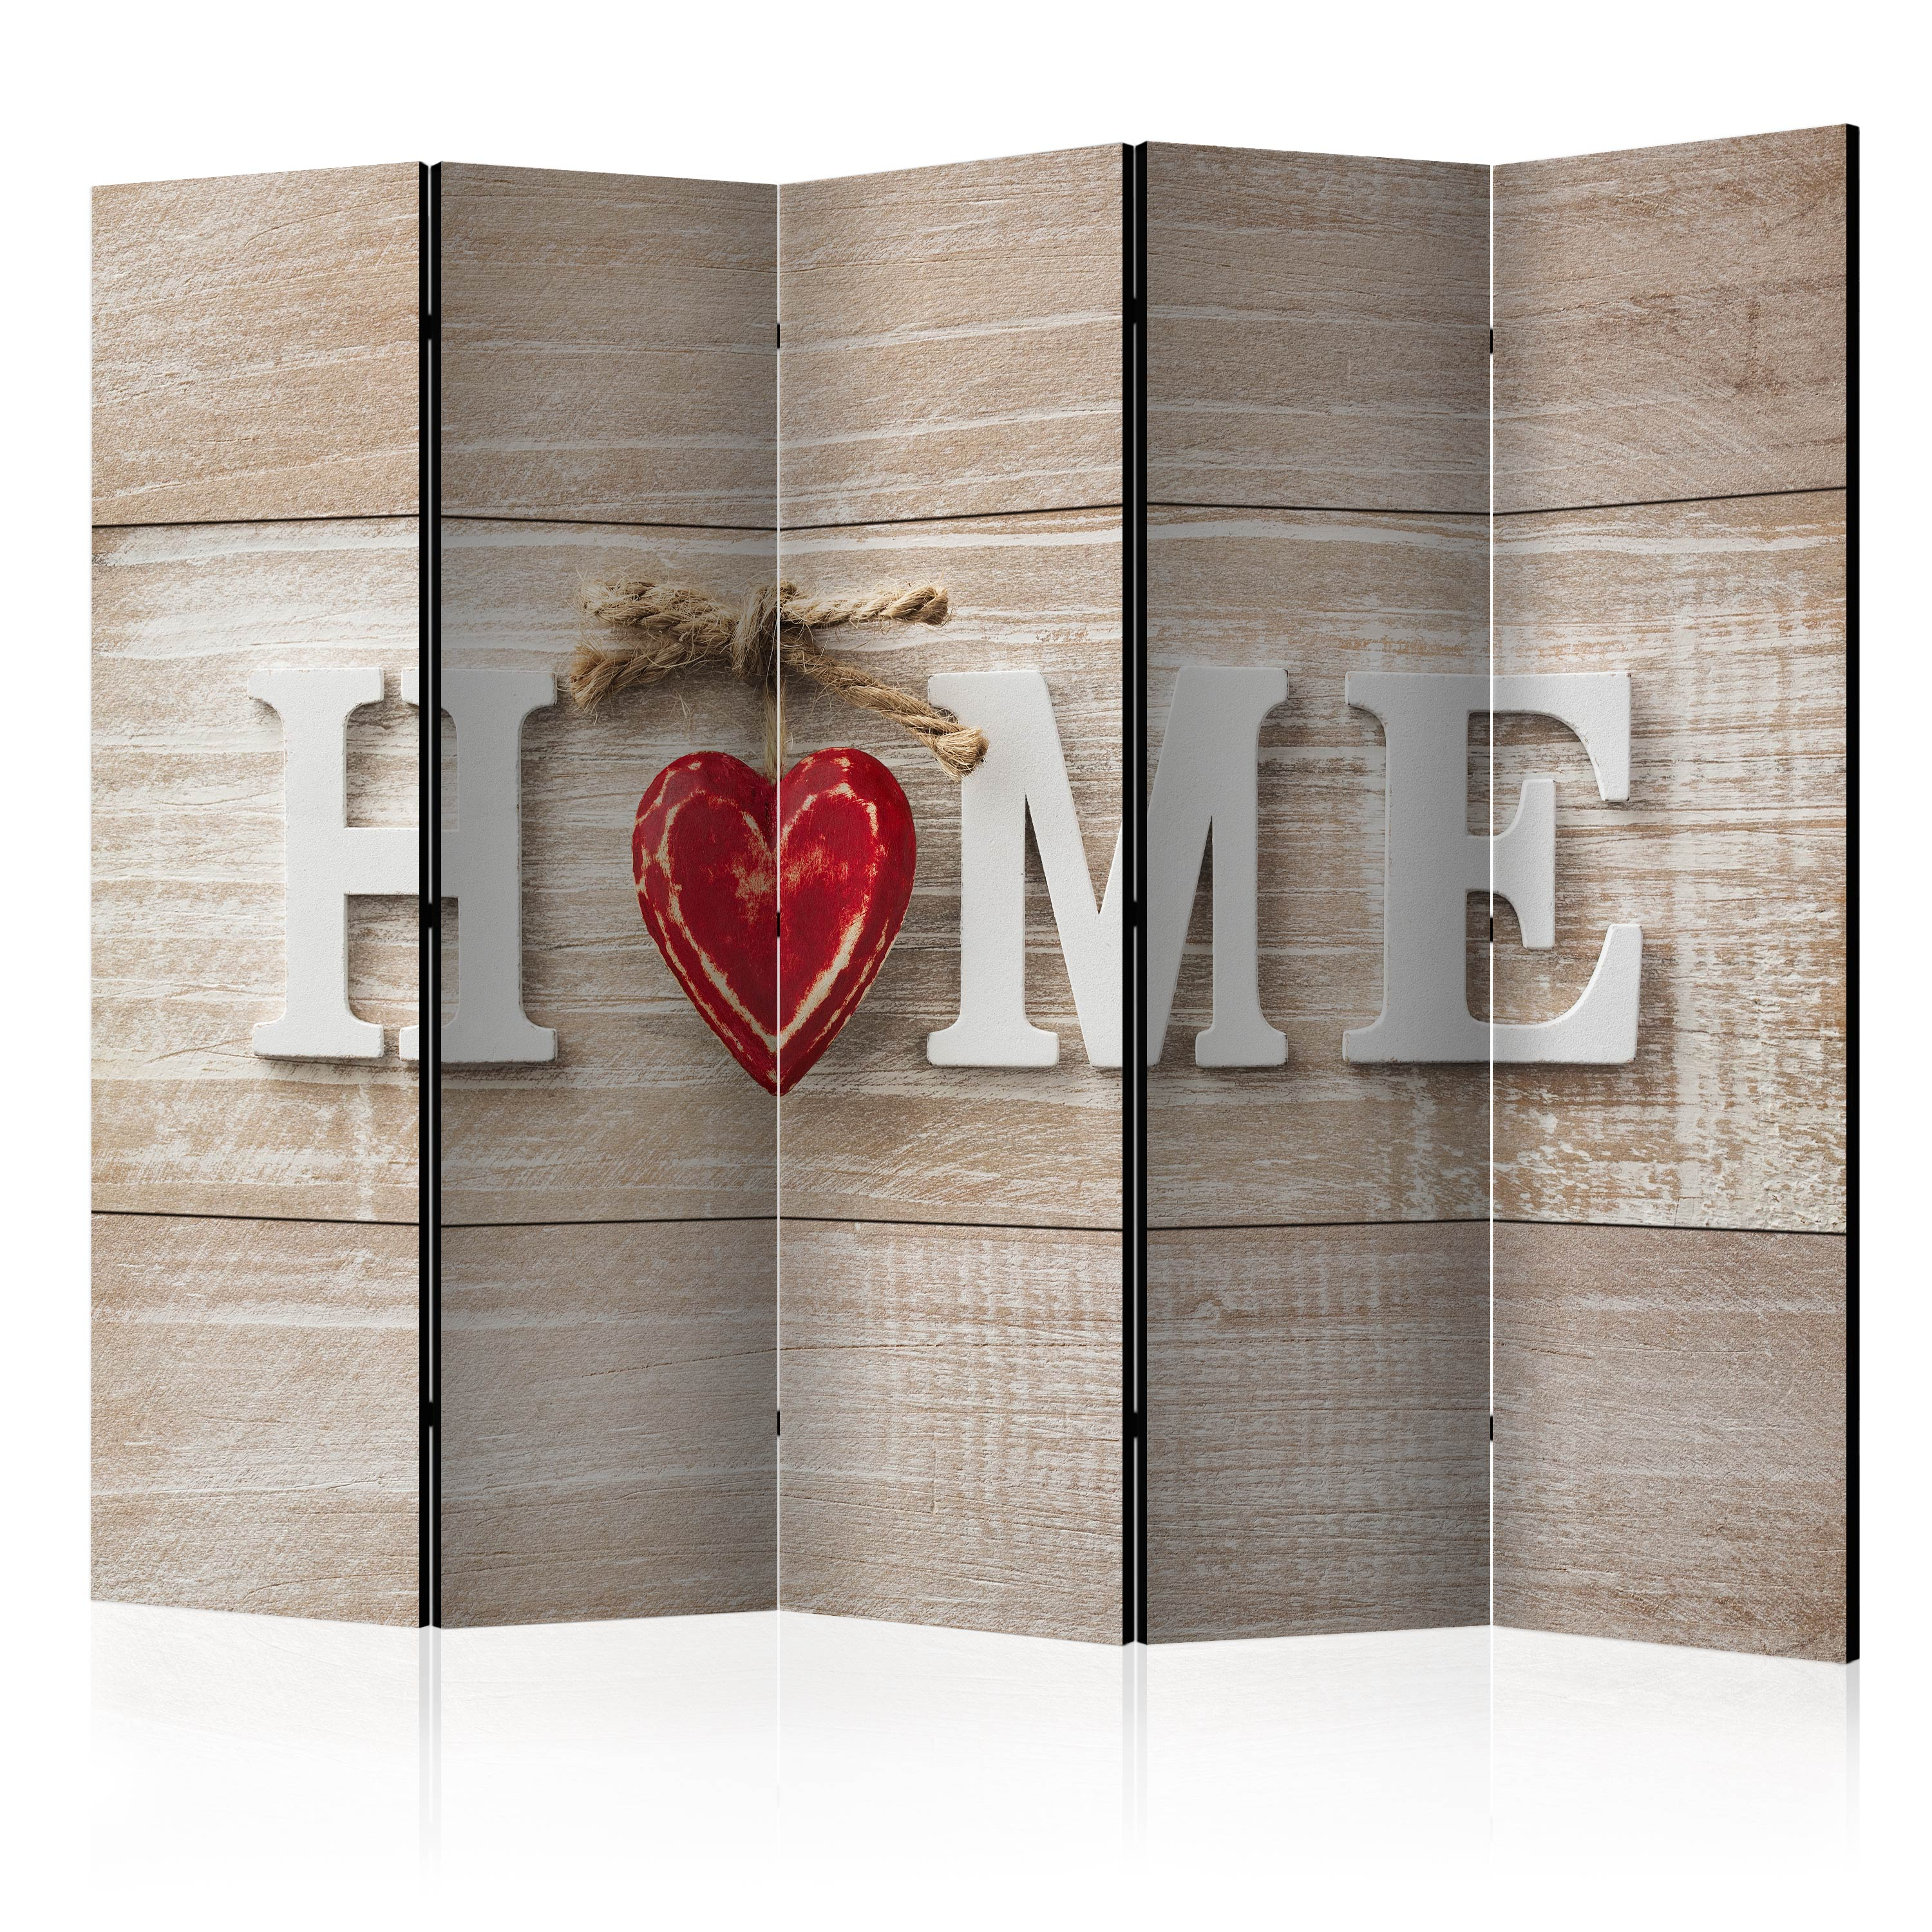 Paravento - Room divider - Home and red heart 225X172 cm